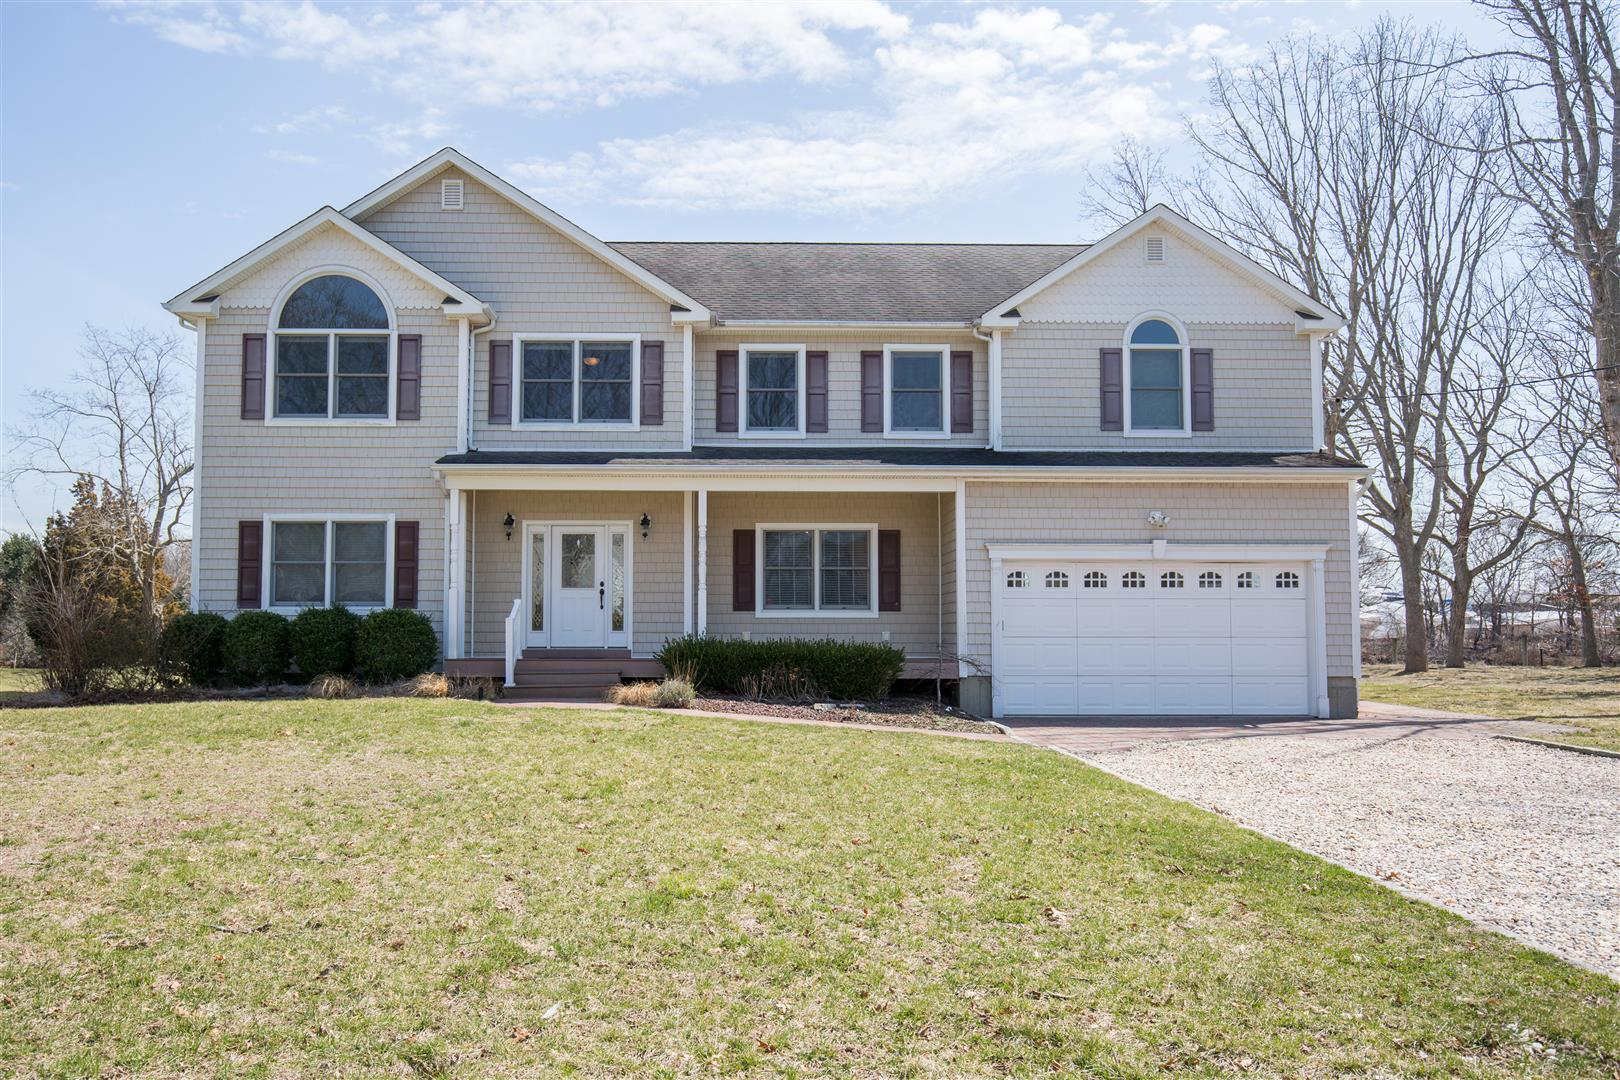 Single Family Home for Sale at 2 Story Mattituck, New York, 11952 United States